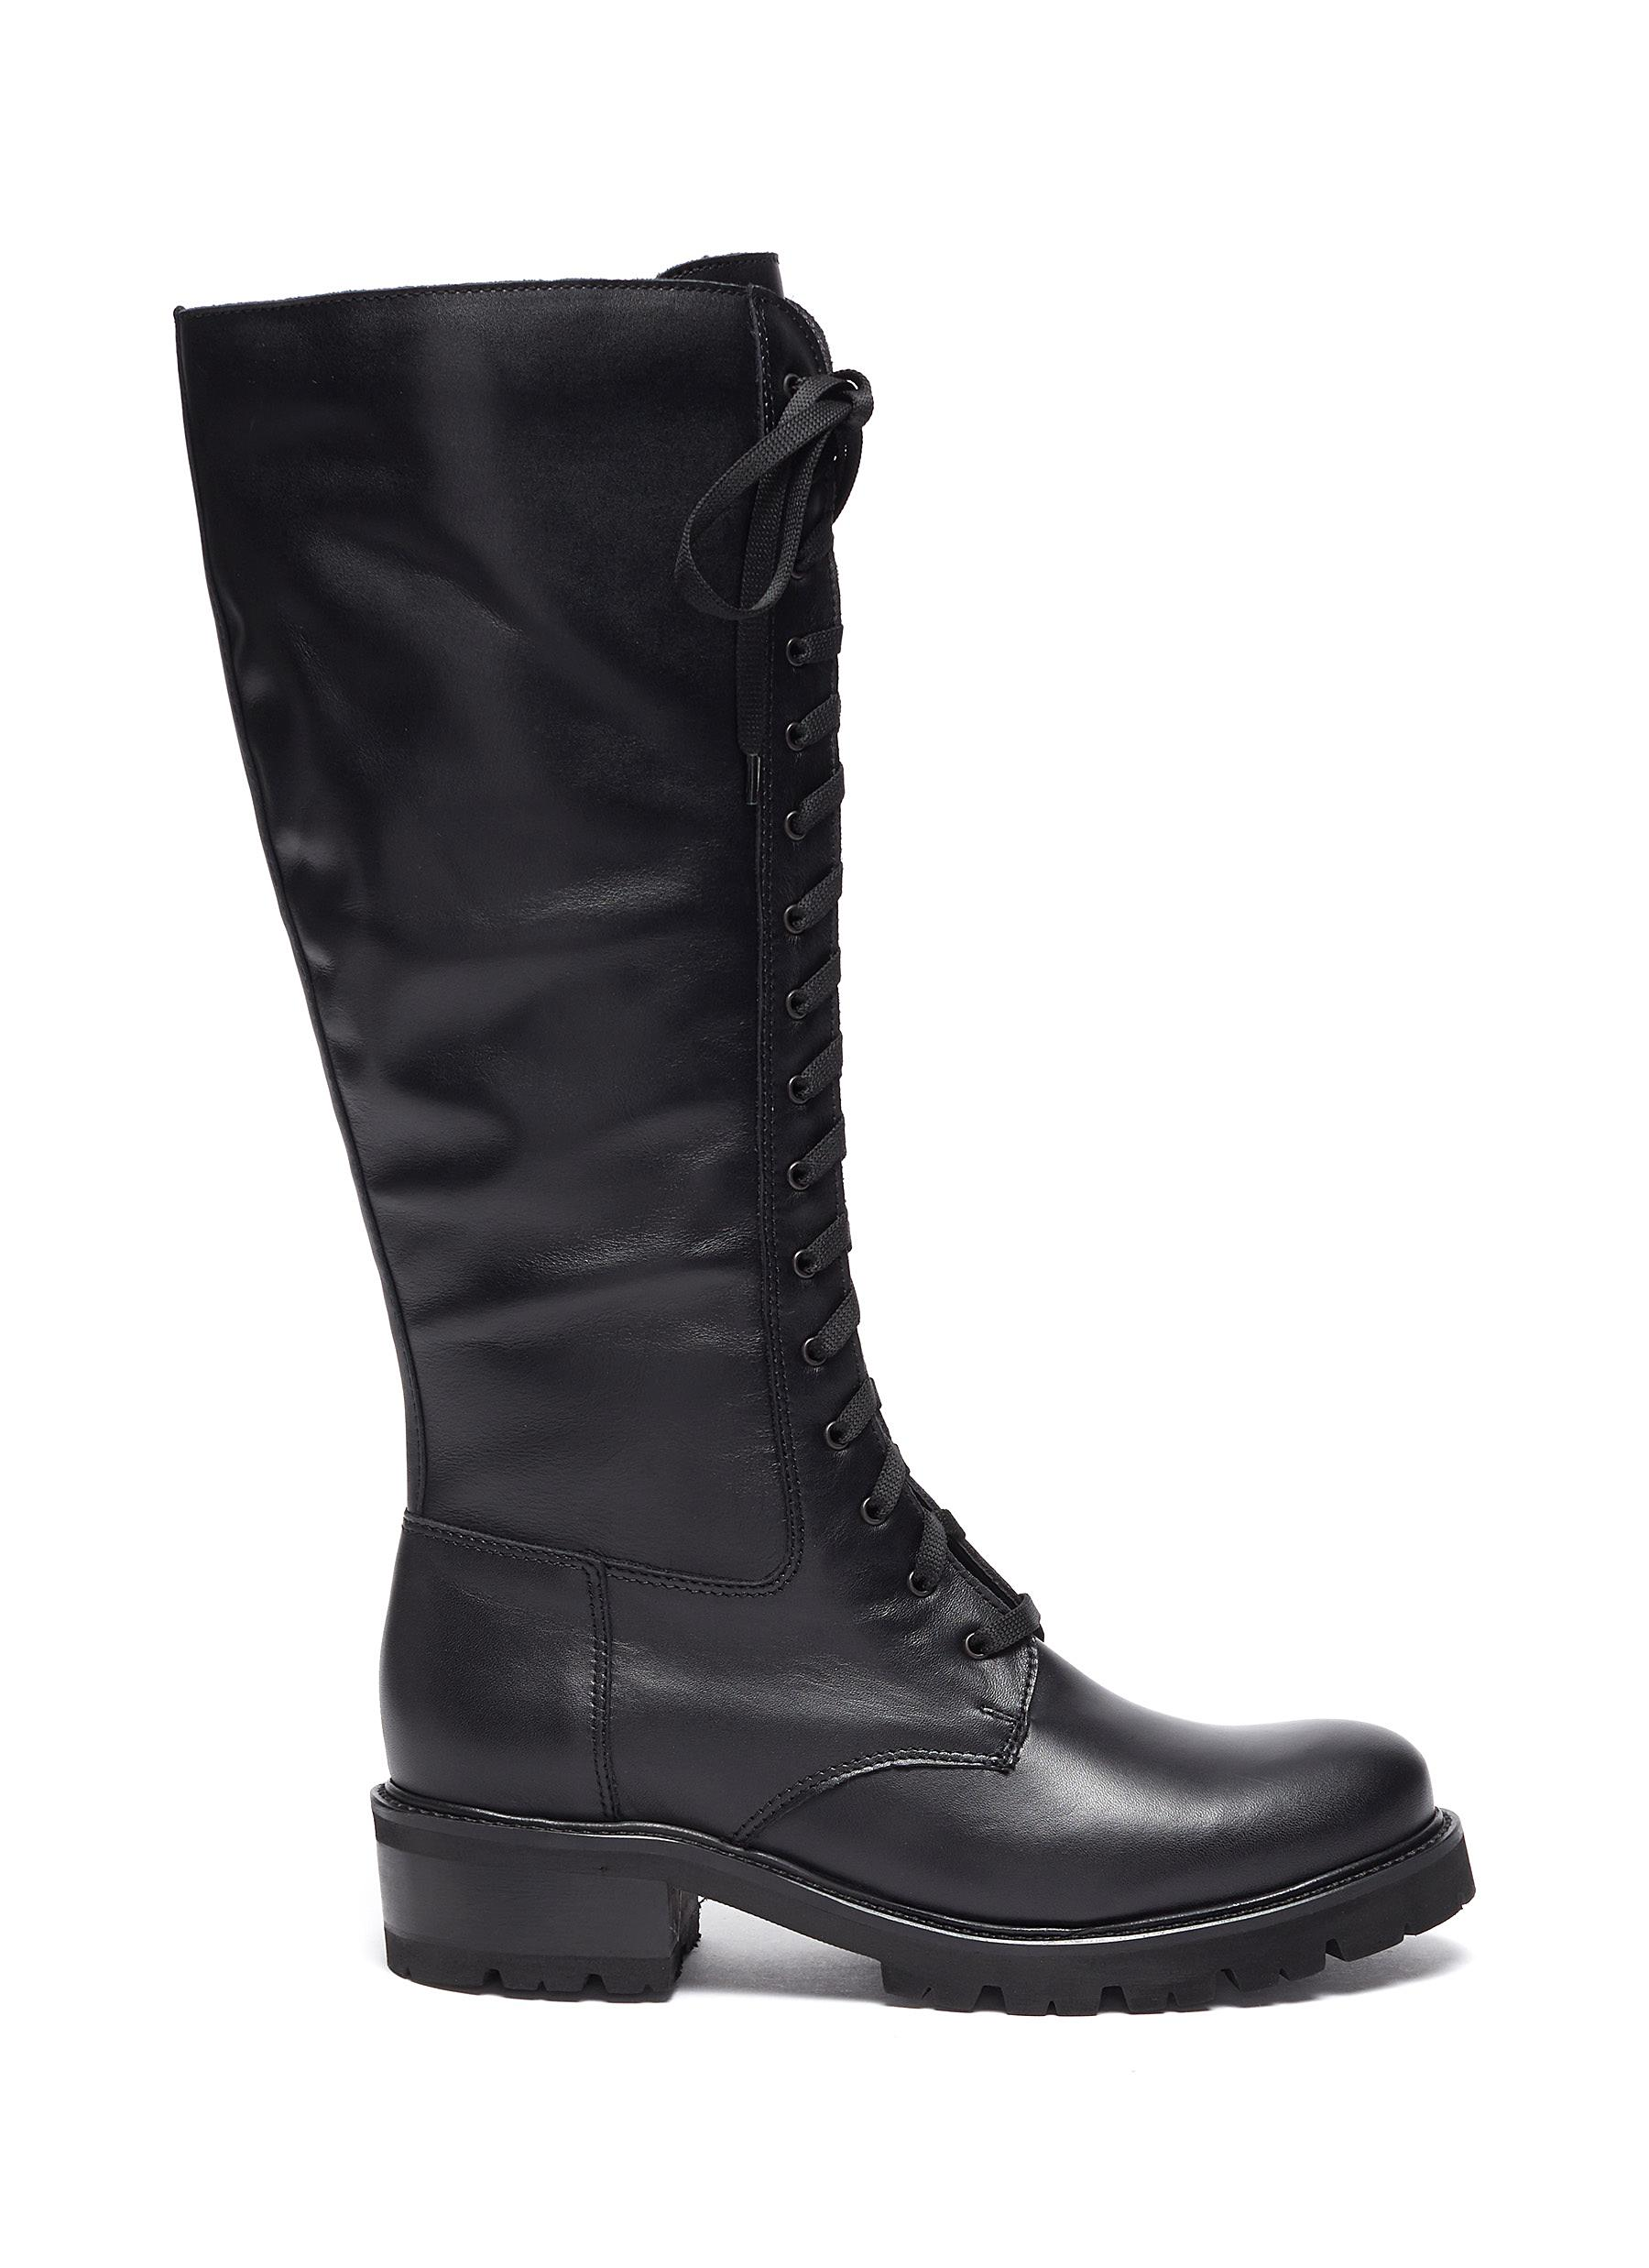 Caprice' Tall Lace Up Leather Boots